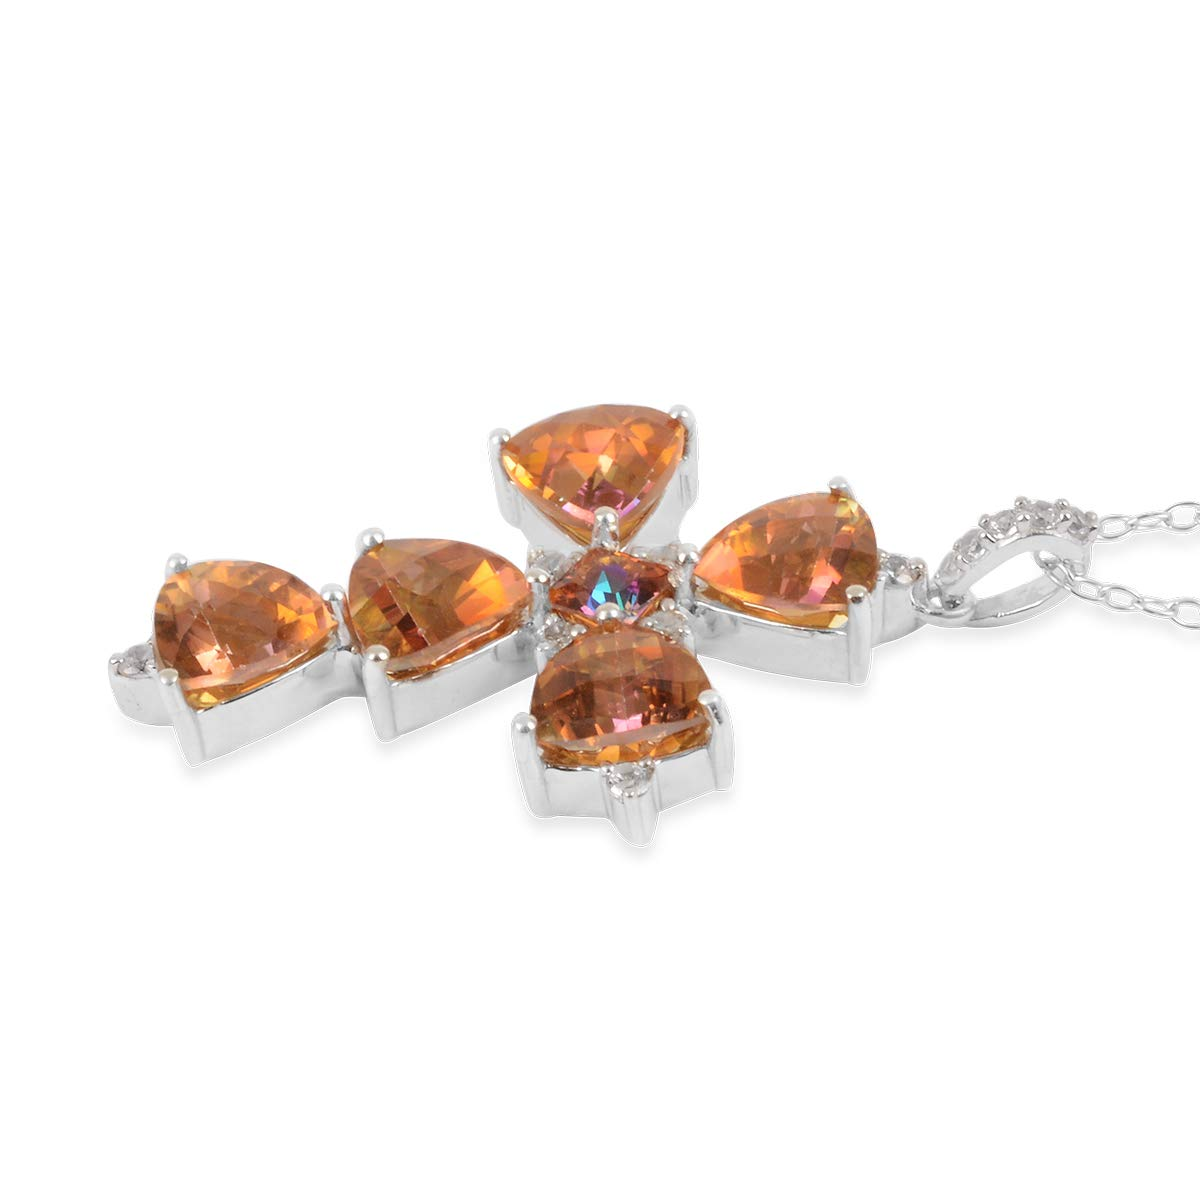 Chain Pendant Necklace 925 Sterling Silver Twilight Coated Topaz White Zircon Jewelry for Women Size 18 Ct 6.4